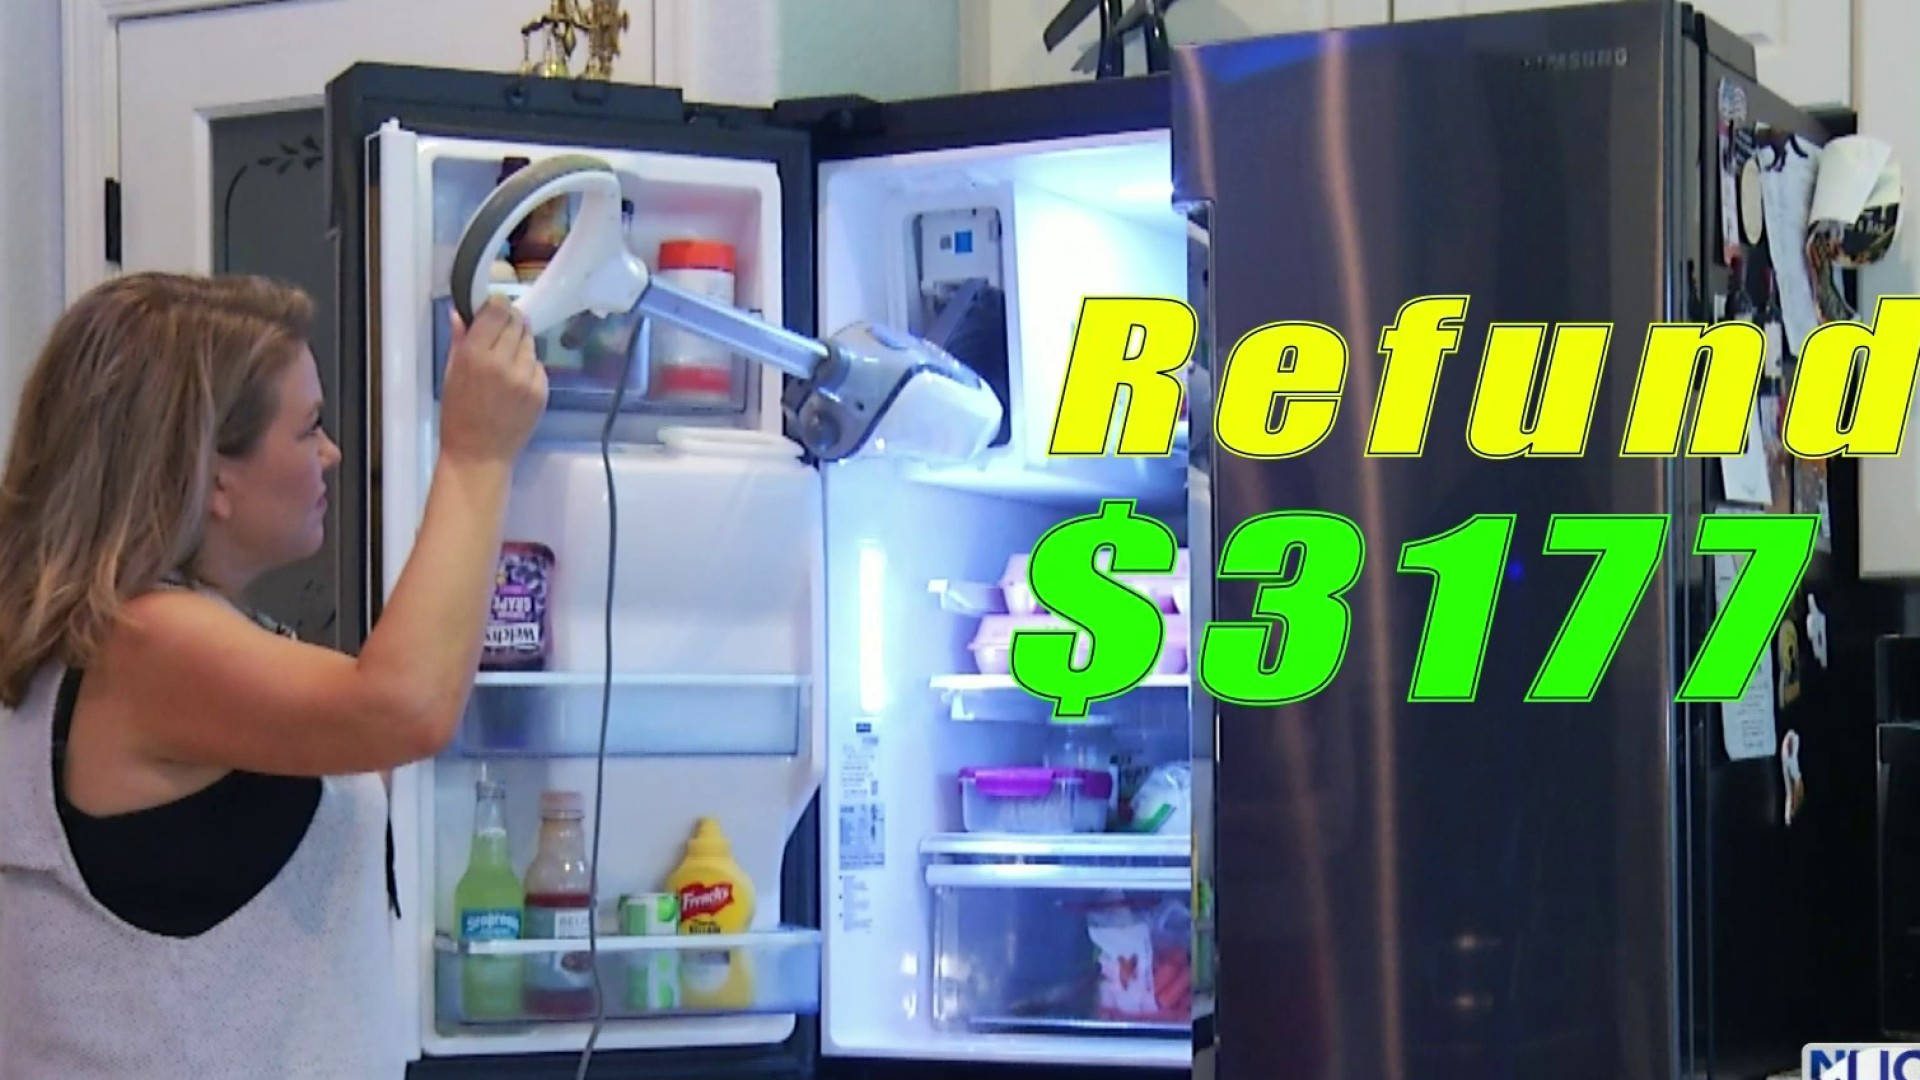 Samsung Refrigerator Owners Frustrated With Ice Makers Freezing Over